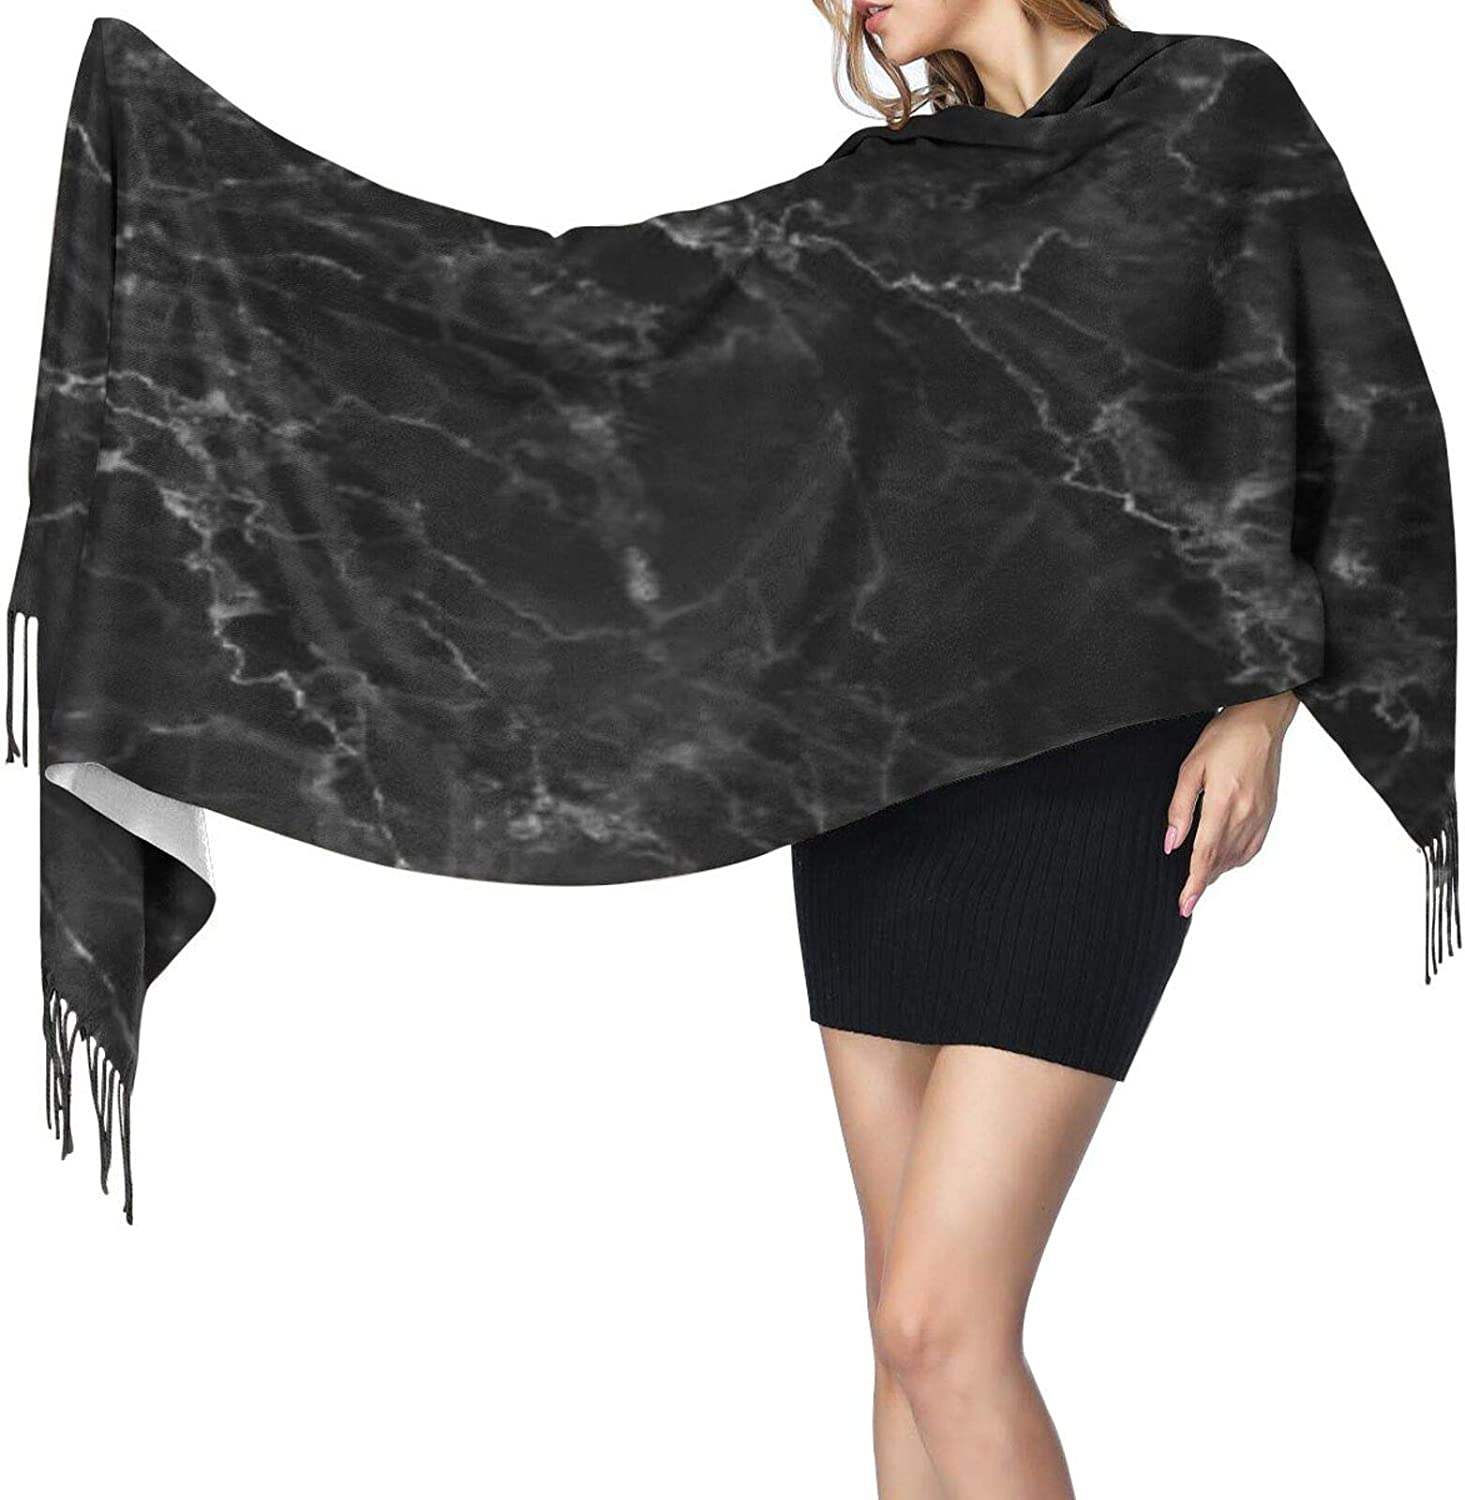 Cashmere fringed scarf black marble texture winter extra large scarf